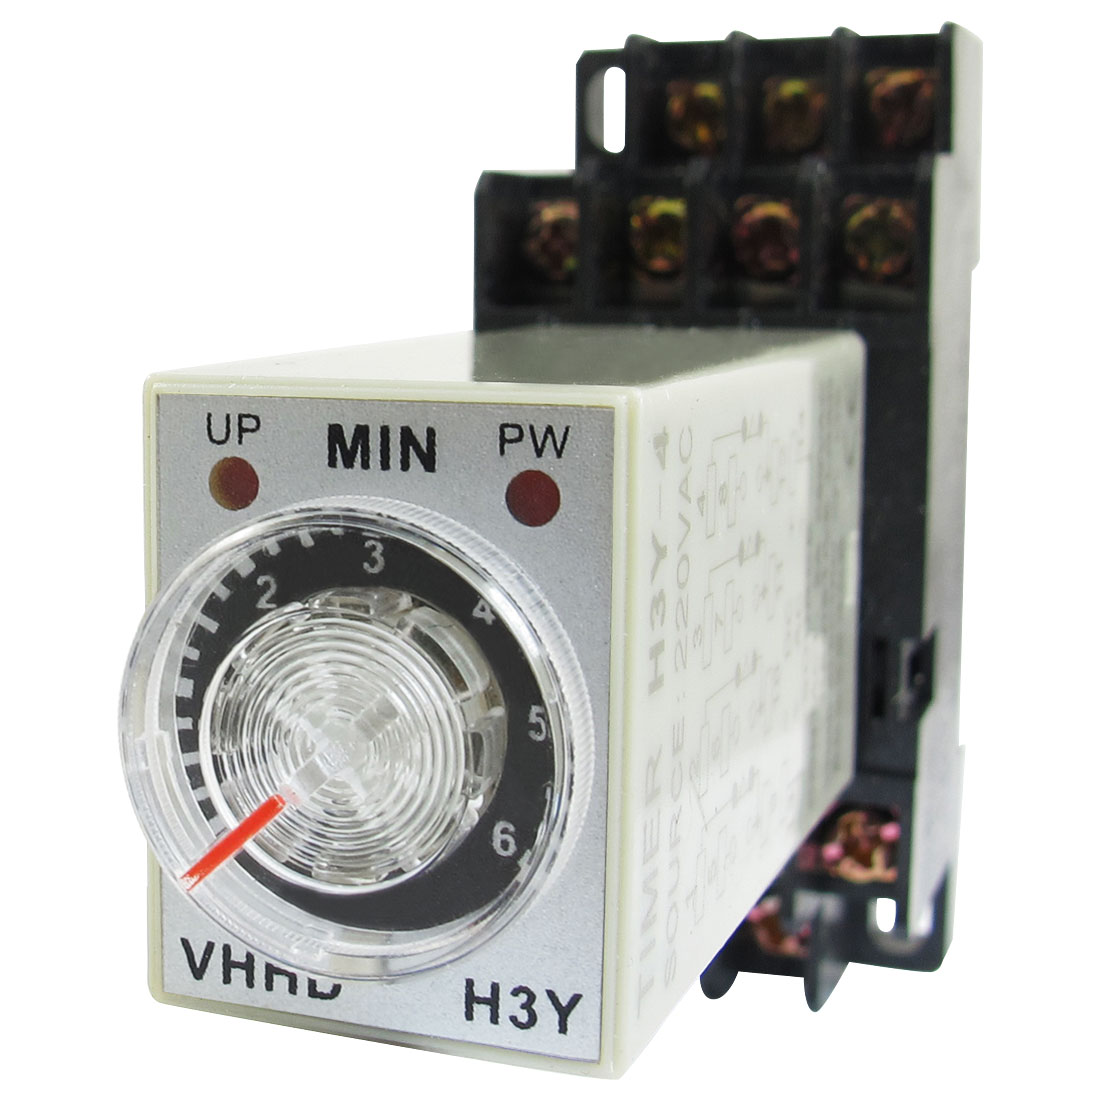 AC 220V 6Min 0-6 Minute Delay Timer Time Relay H3Y-4 w 14 Pin DIN Rail Socket